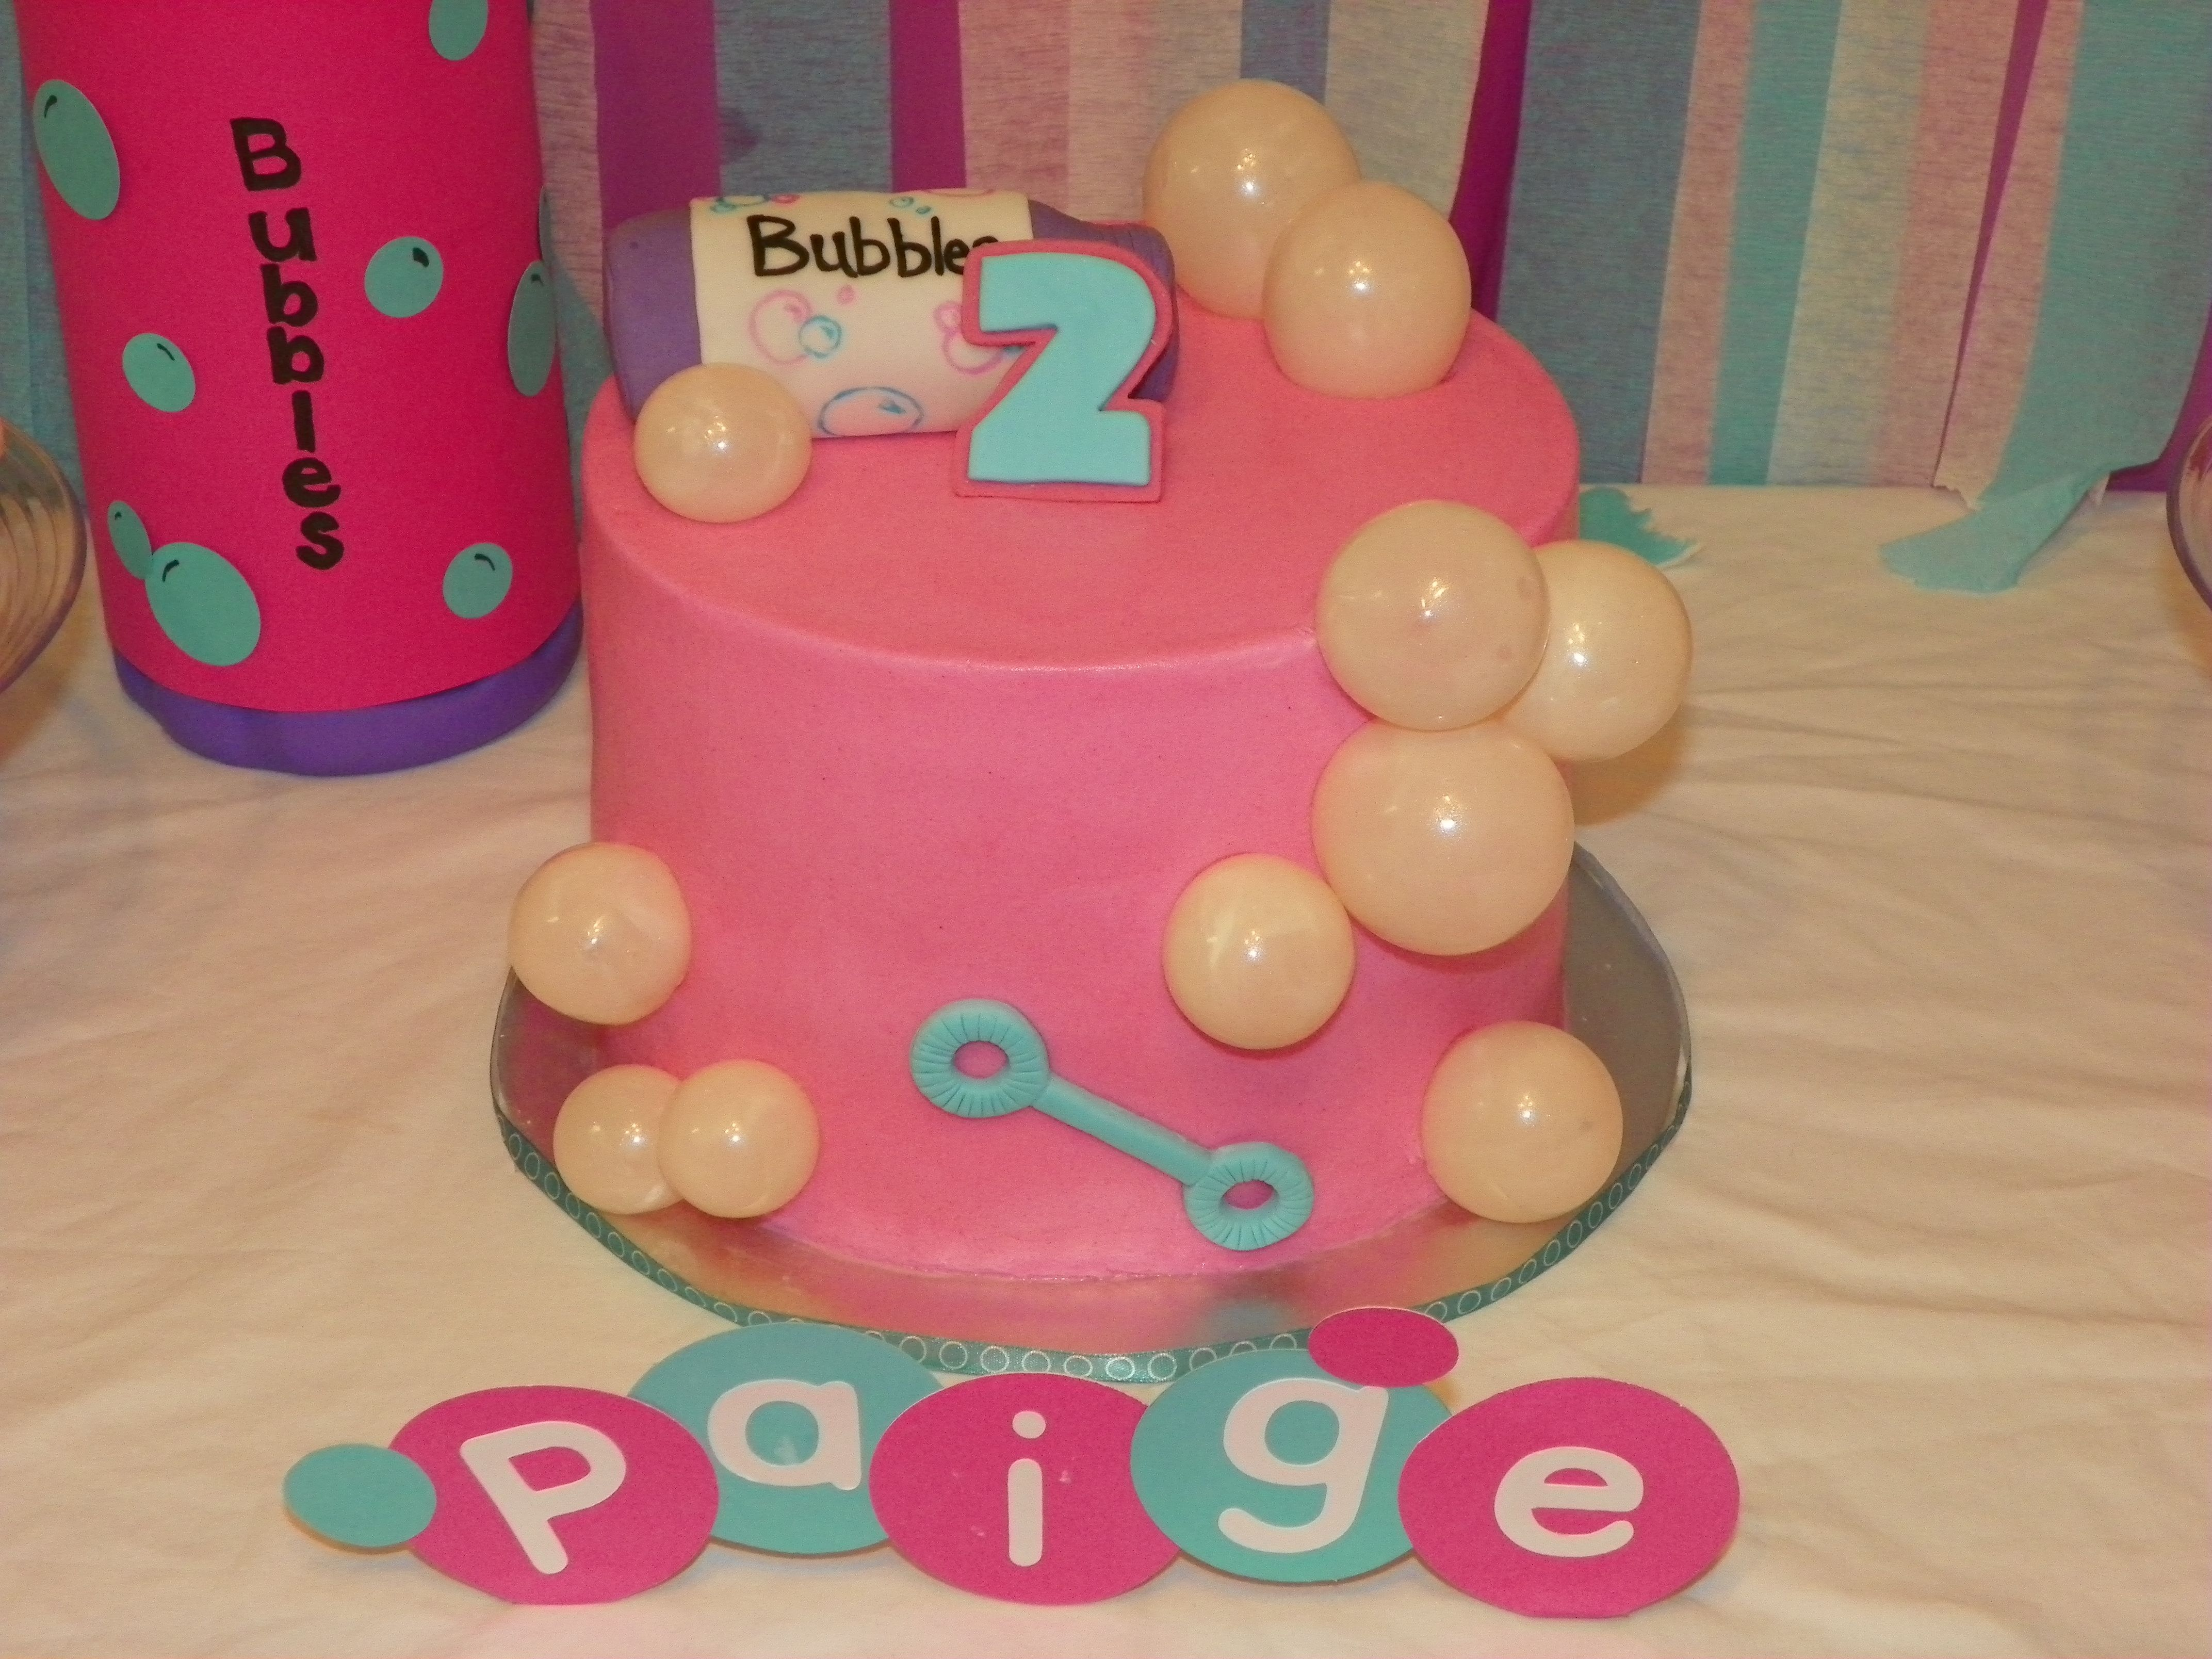 Bubbles Birthday Party Ideas Photo 6 Of 22 Catch My Party Bubble Birthday Bubble Party Bubble Birthday Parties